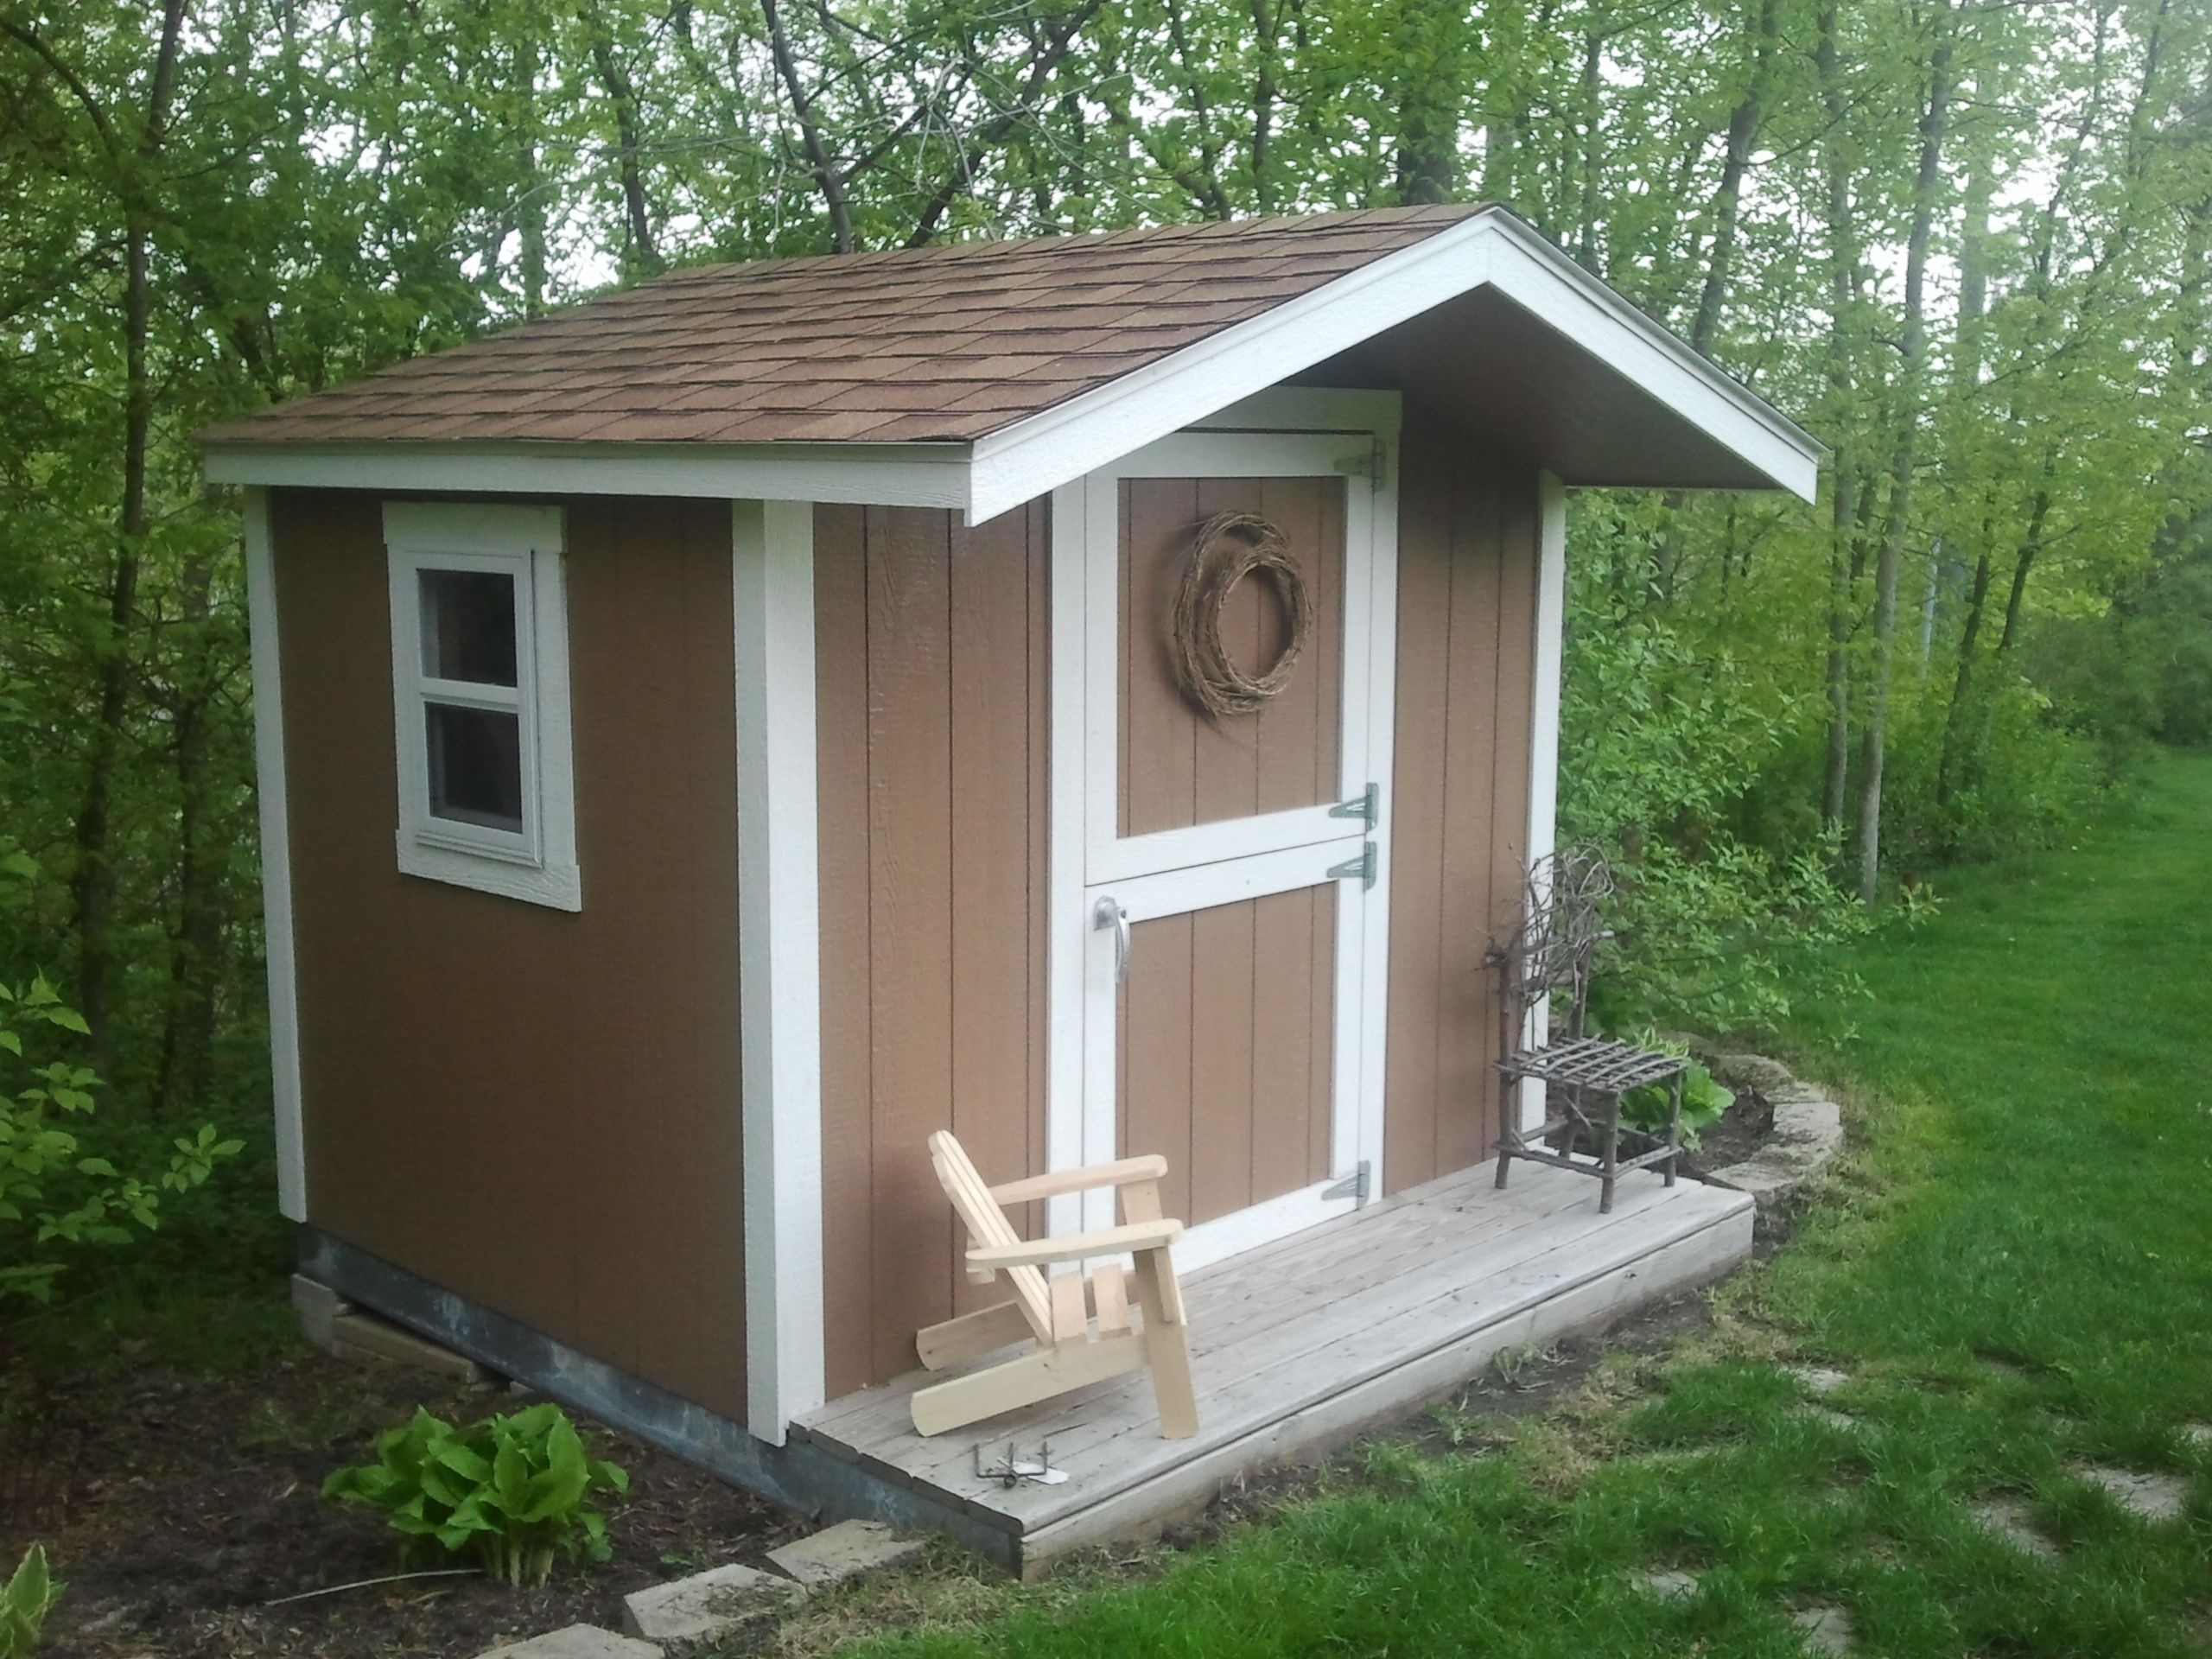 Home Depot Sheds For Sale Tuff Shed Playhouse Ordered At Home Depot Tuff Shed At Home